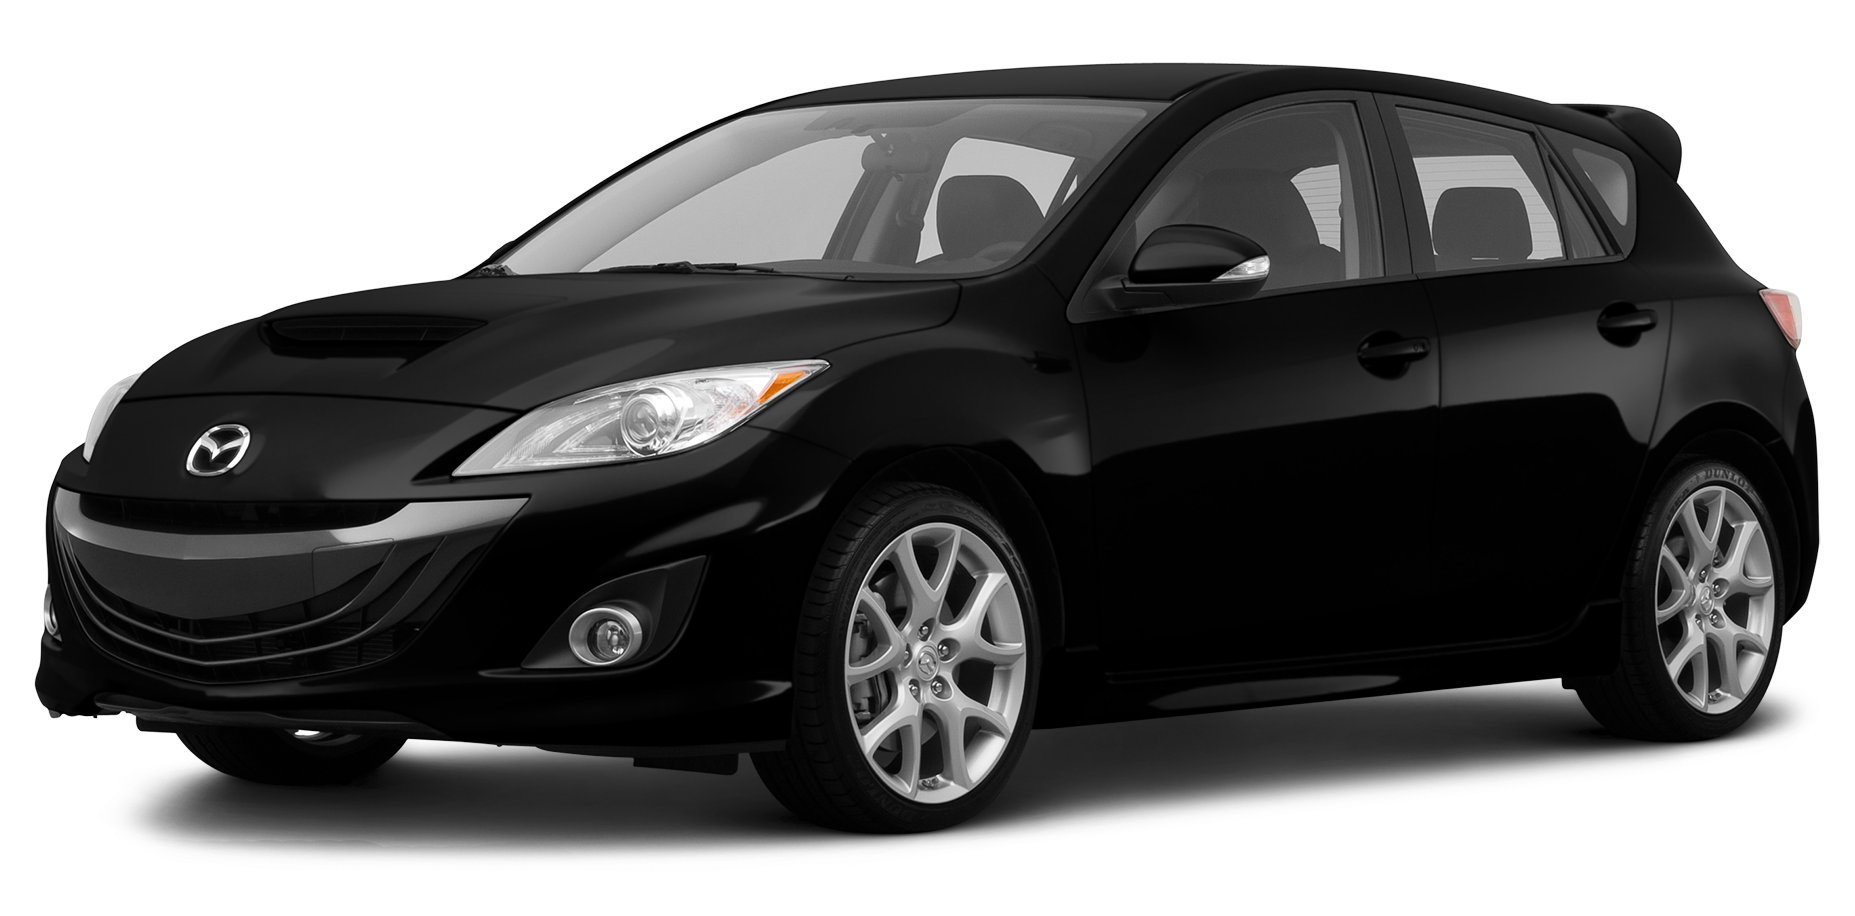 2012 mazda 3 reviews images and specs vehicles. Black Bedroom Furniture Sets. Home Design Ideas